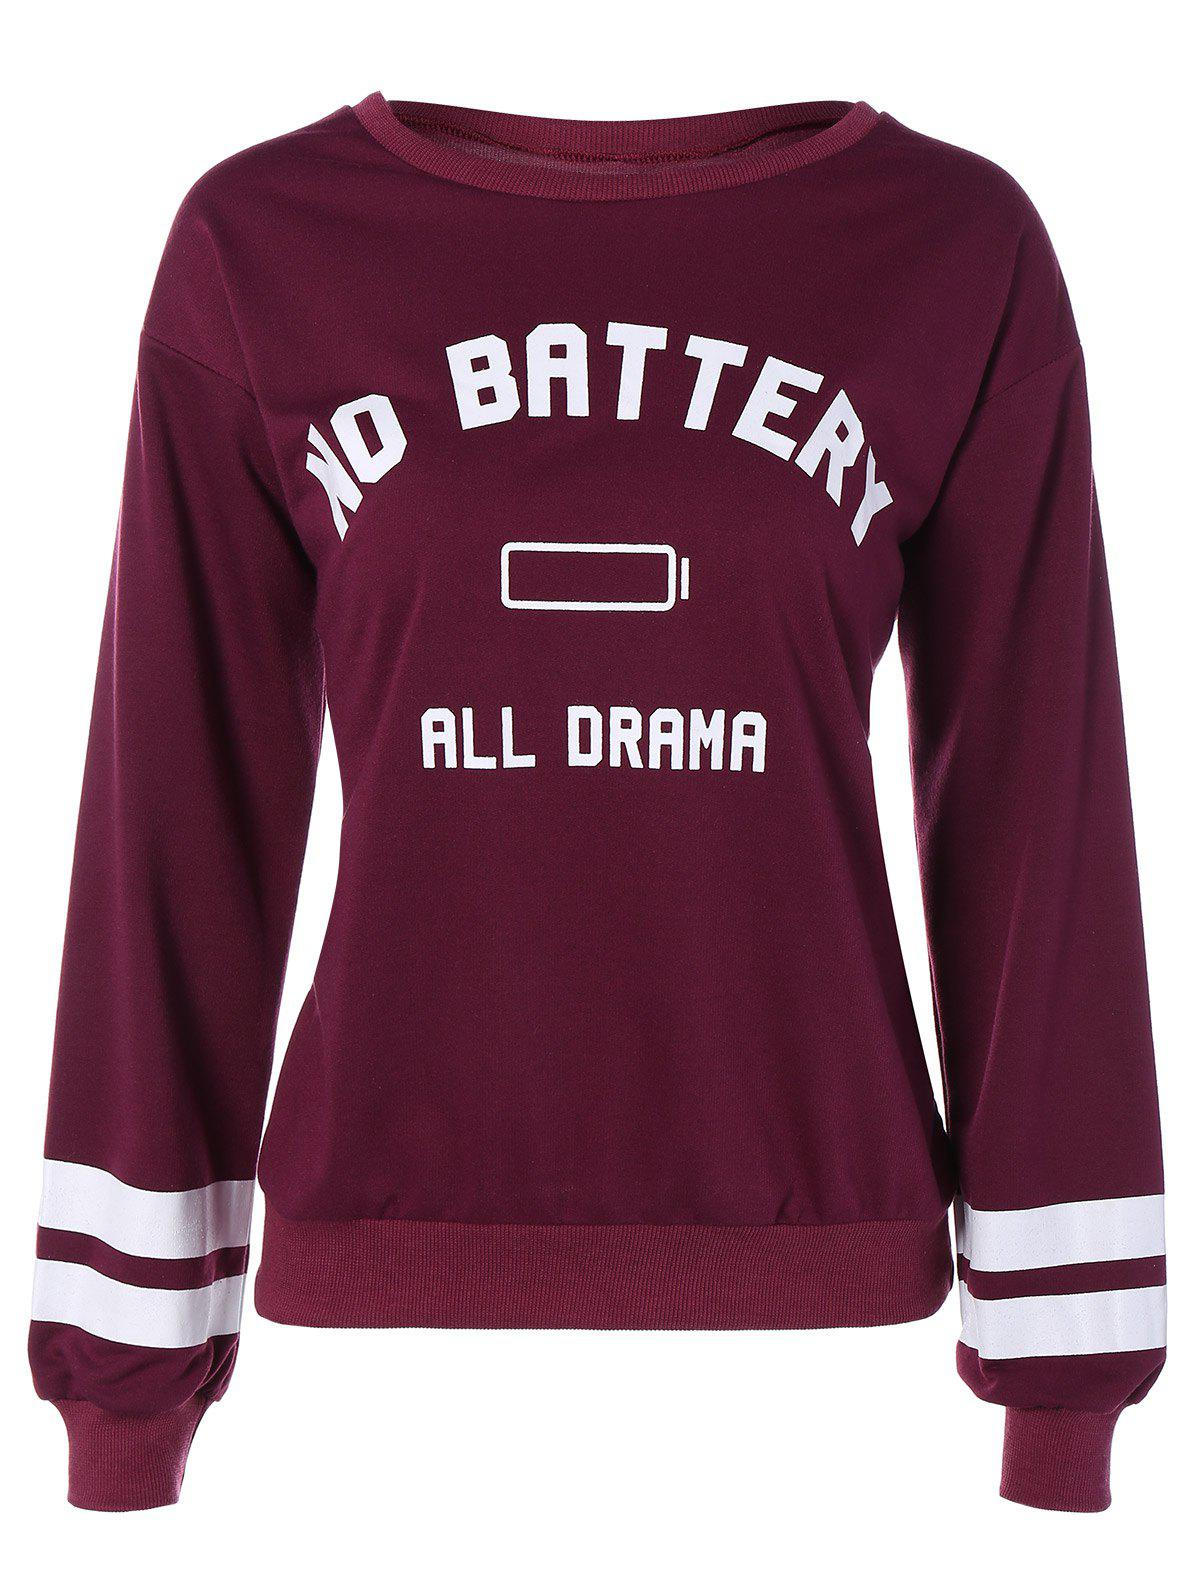 Online No Battery All Drama Print Sweatshirt